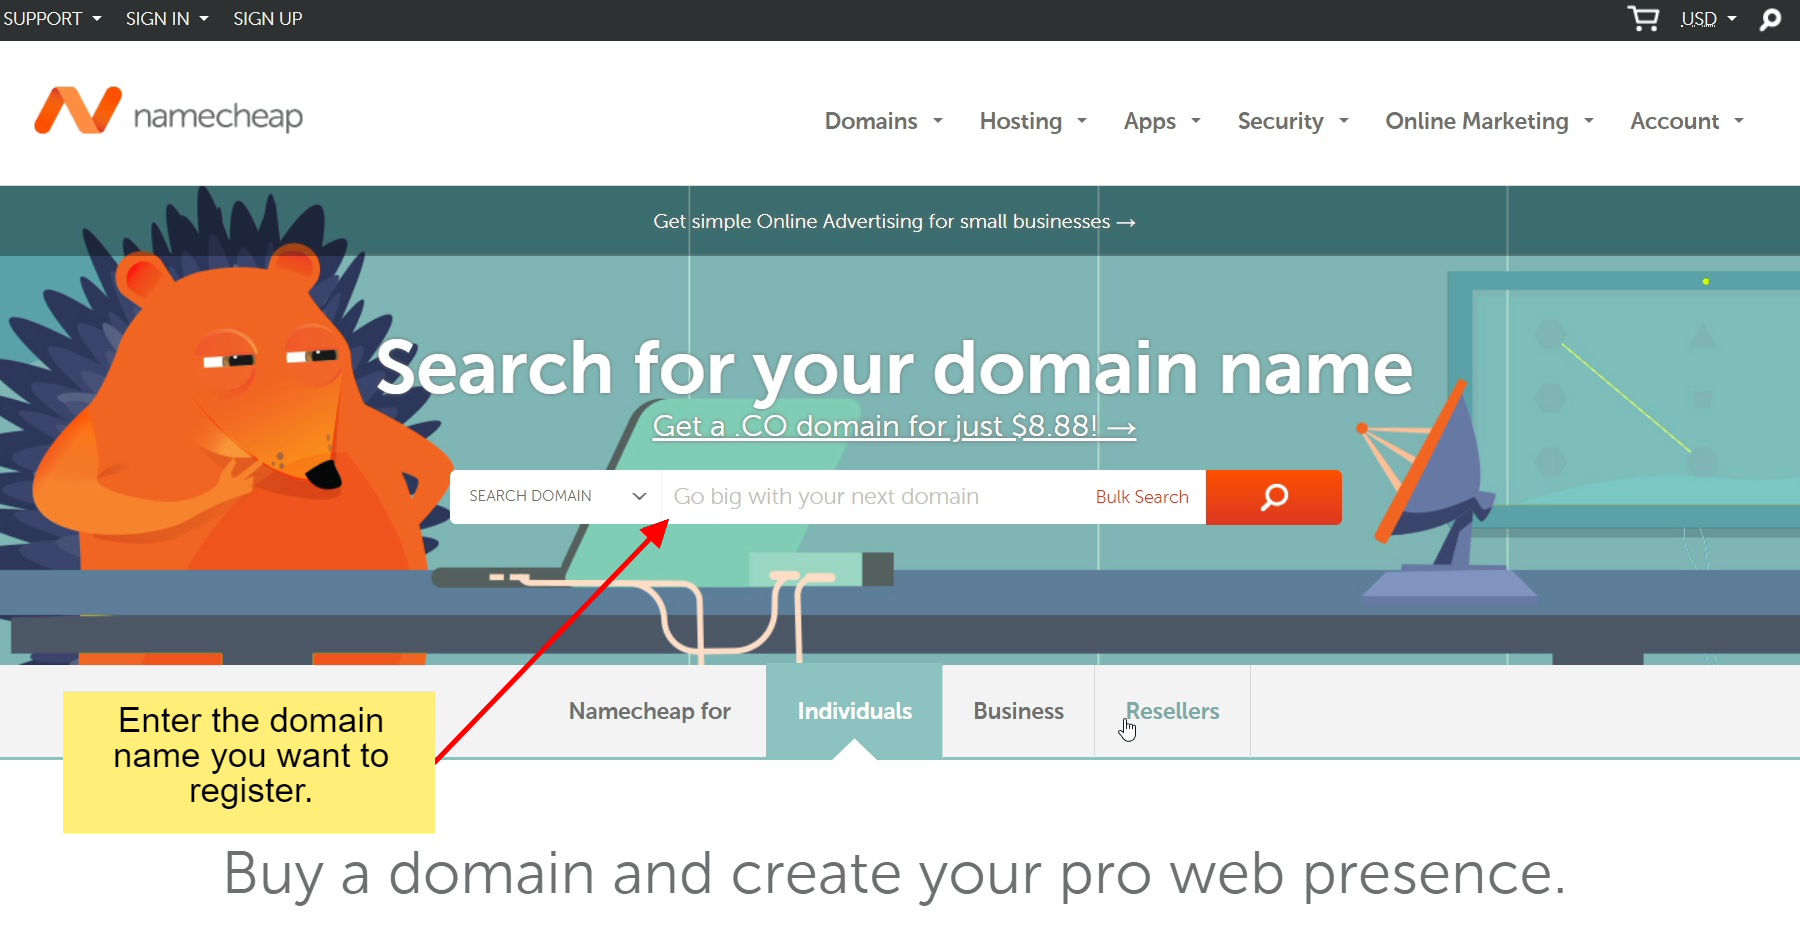 Go to namecheap.com